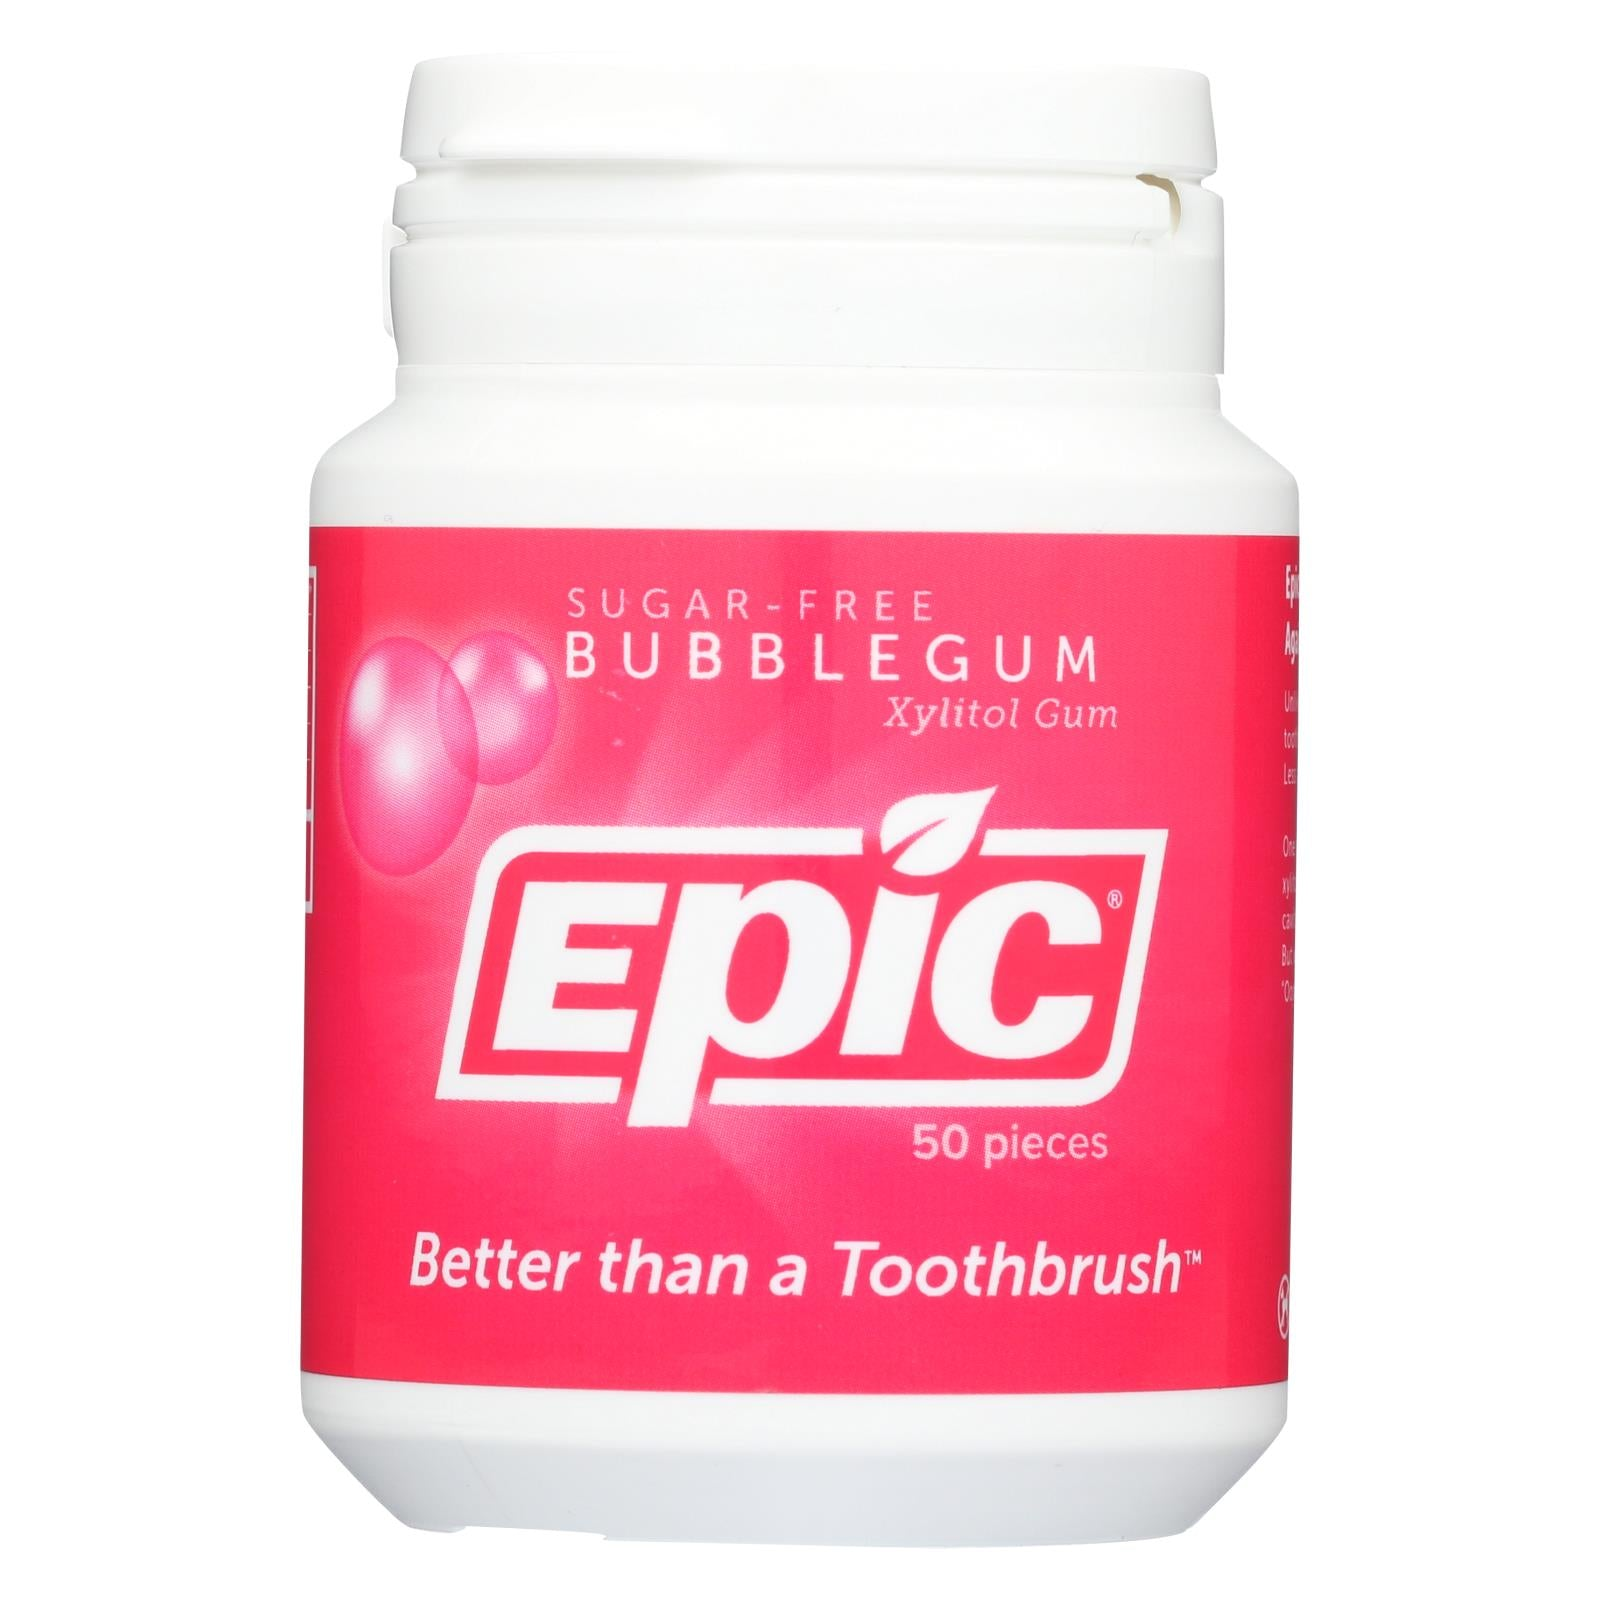 Buy Epic Dental - Gum Xylitol Bubble Gum - 50 CT - Candy and Chewing Gum from Veroeco.com